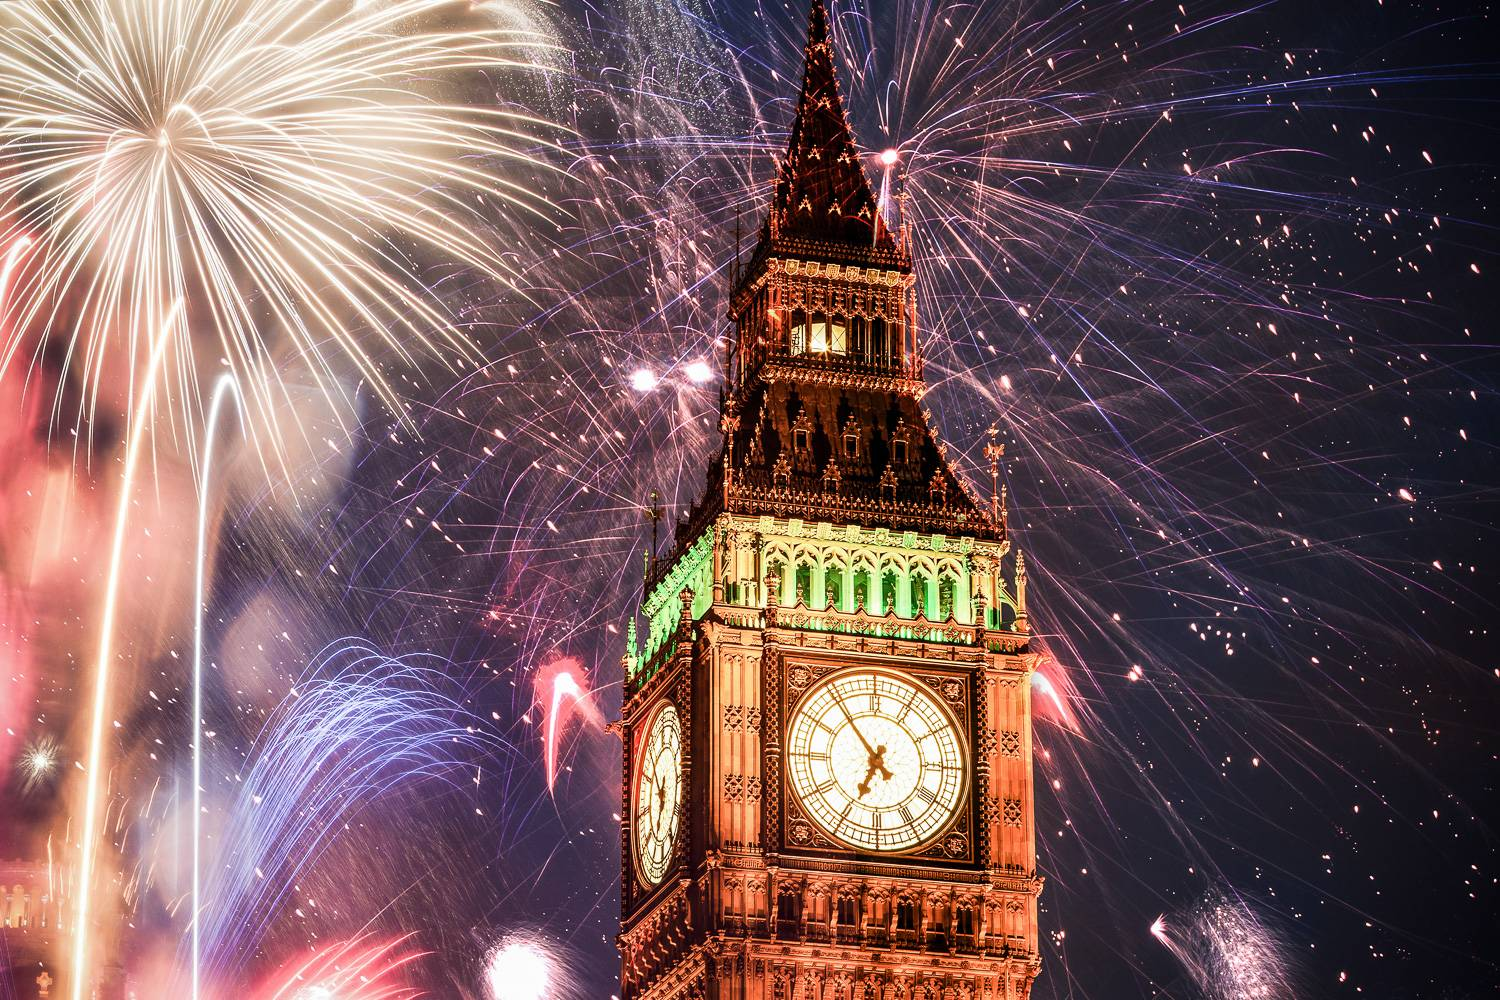 2019 New Year's Eve in London